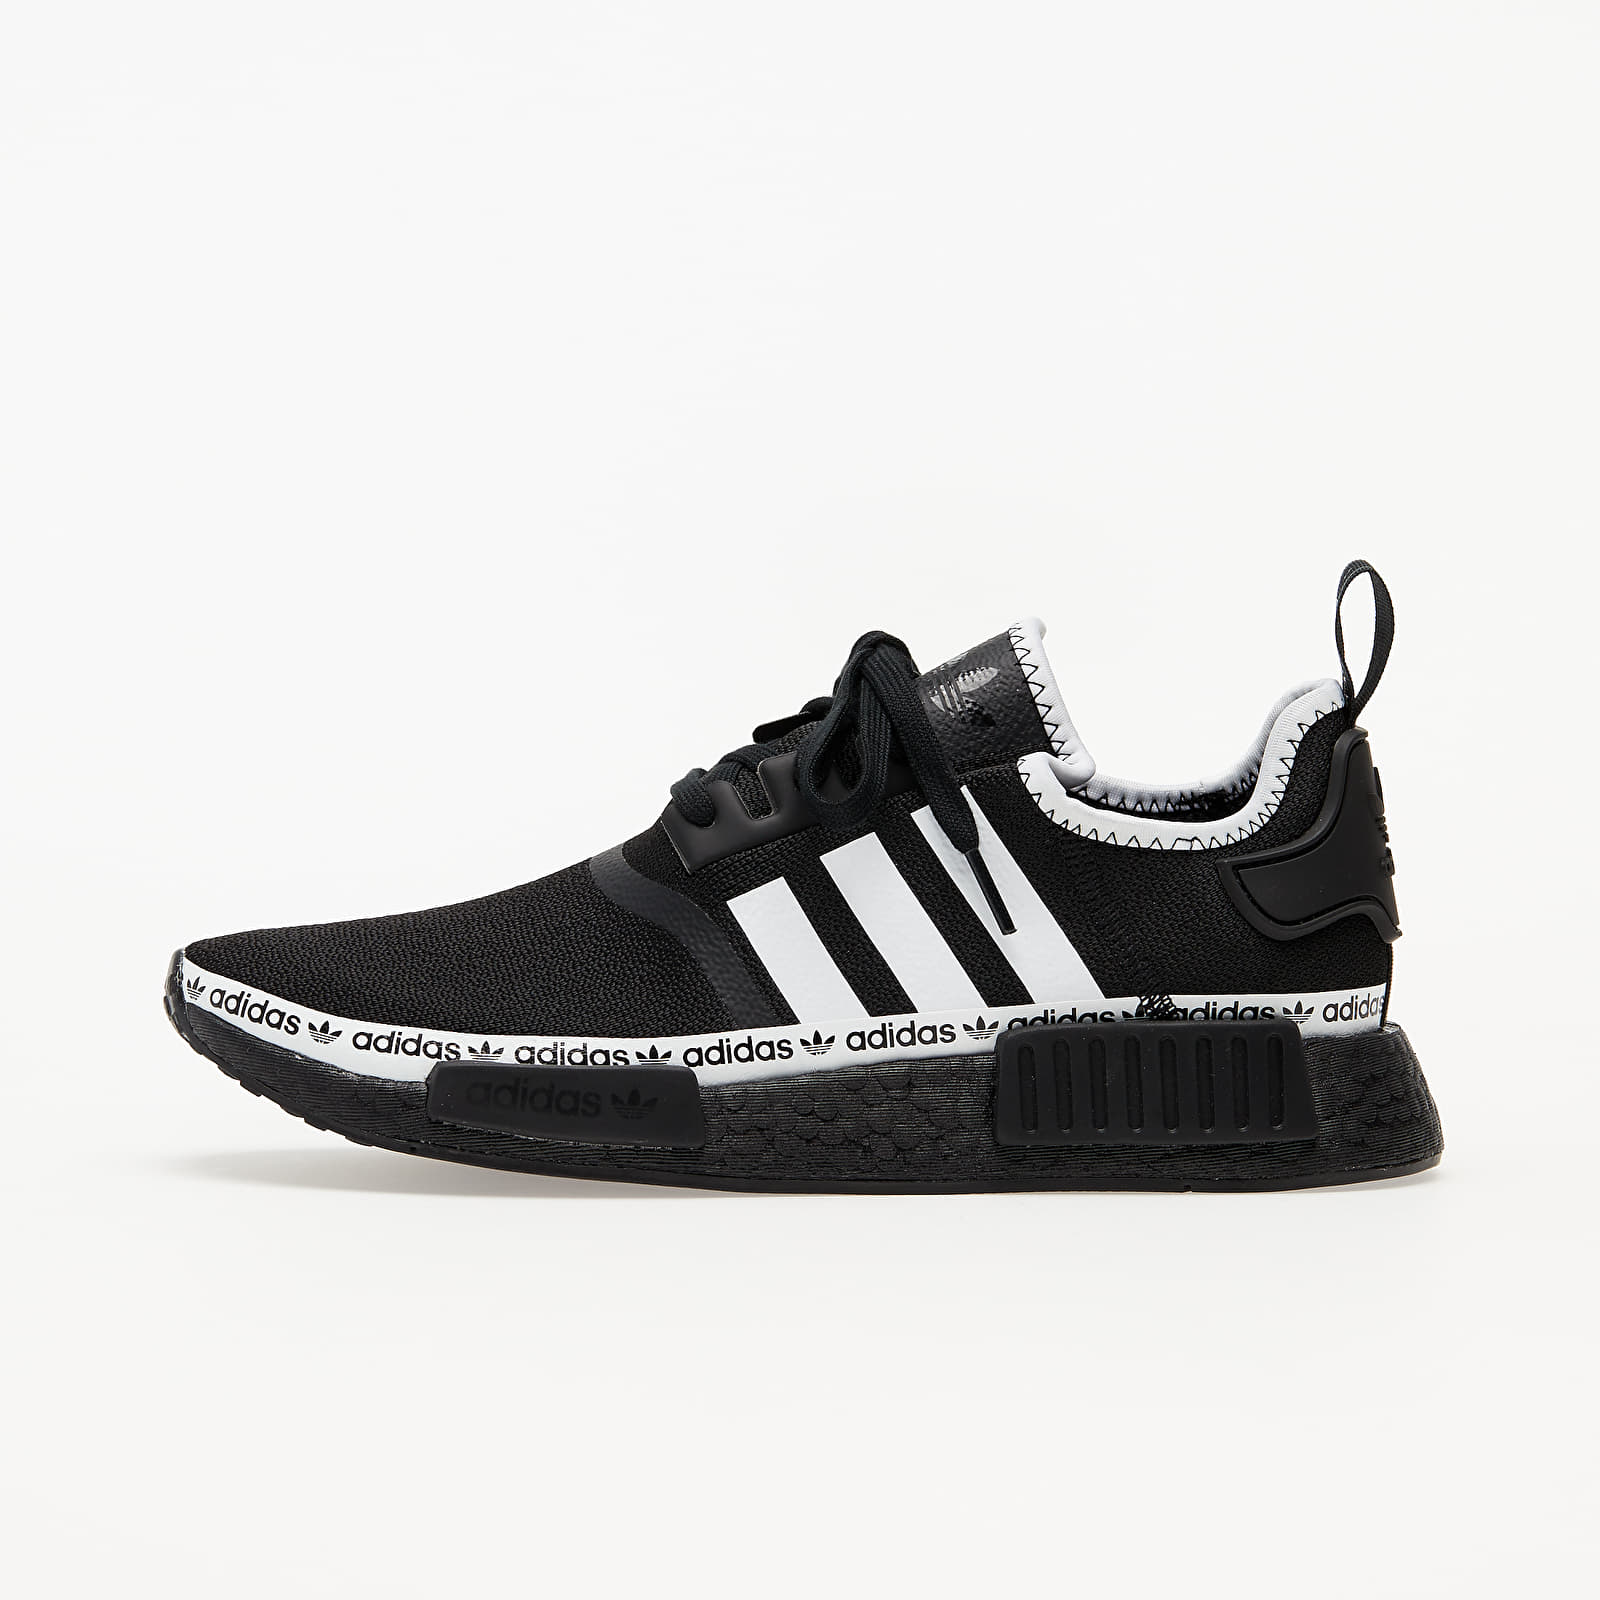 Men's shoes adidas NMD_R1 Core Black/ Ftw White/ Ftw White